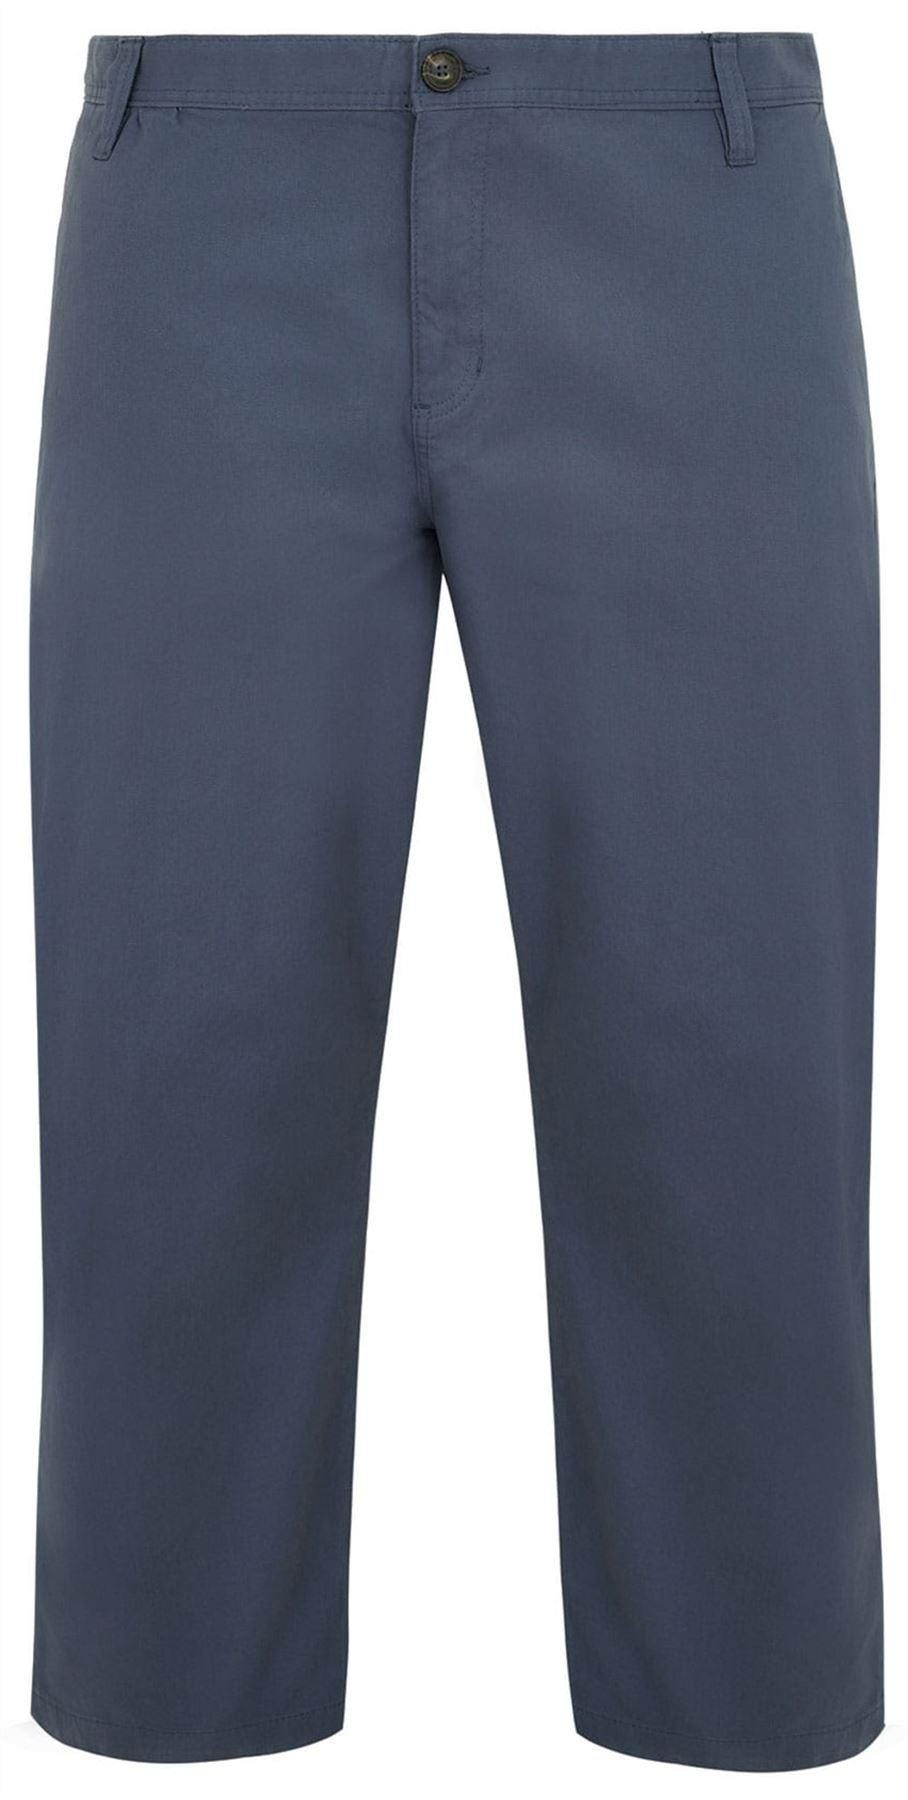 Bad Rhino Stretch Chinos - Blue|50W30L